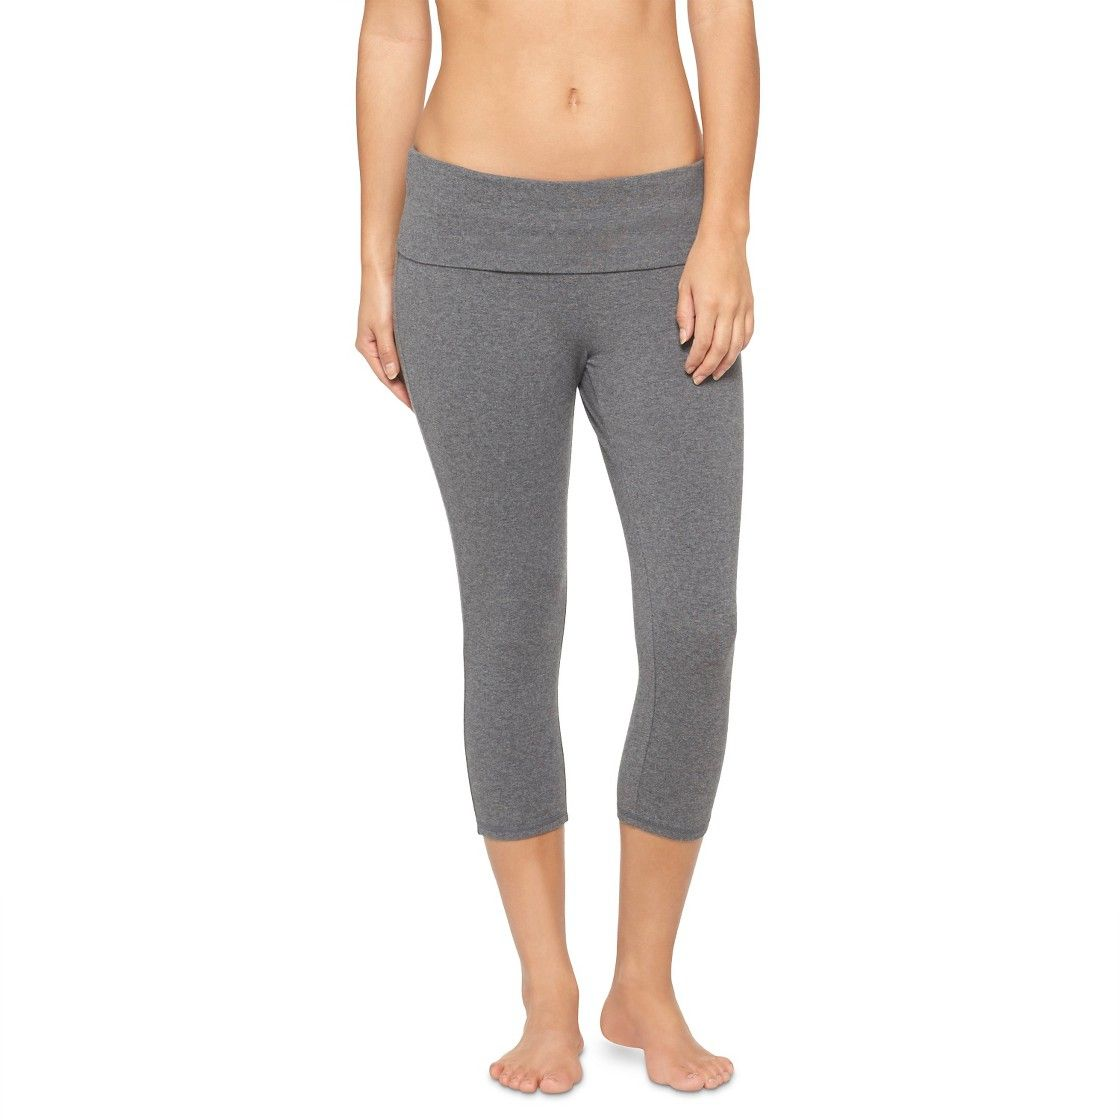 0f167c4930 Yoga Capri - Mossimo Supply Co. | Summer Dreams | Pinterest | Yoga ...